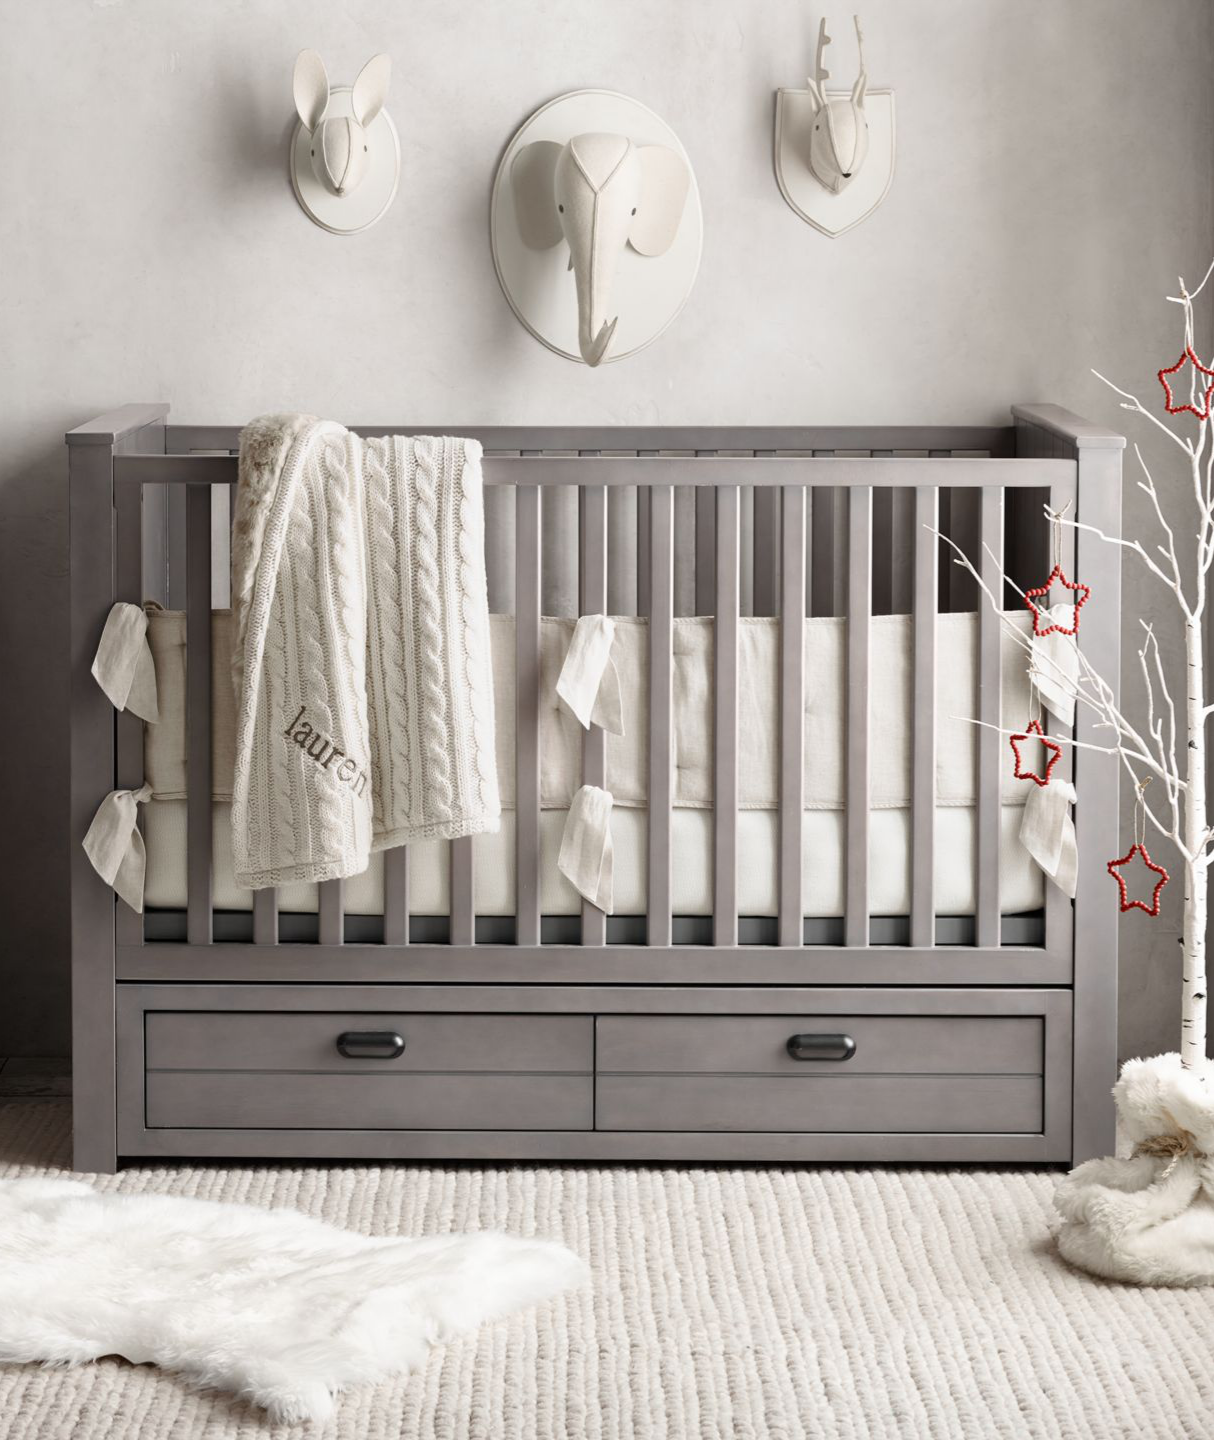 bring the spirit of the season to the nursery rhbabyandchild chase thomas pinterest baby. Black Bedroom Furniture Sets. Home Design Ideas